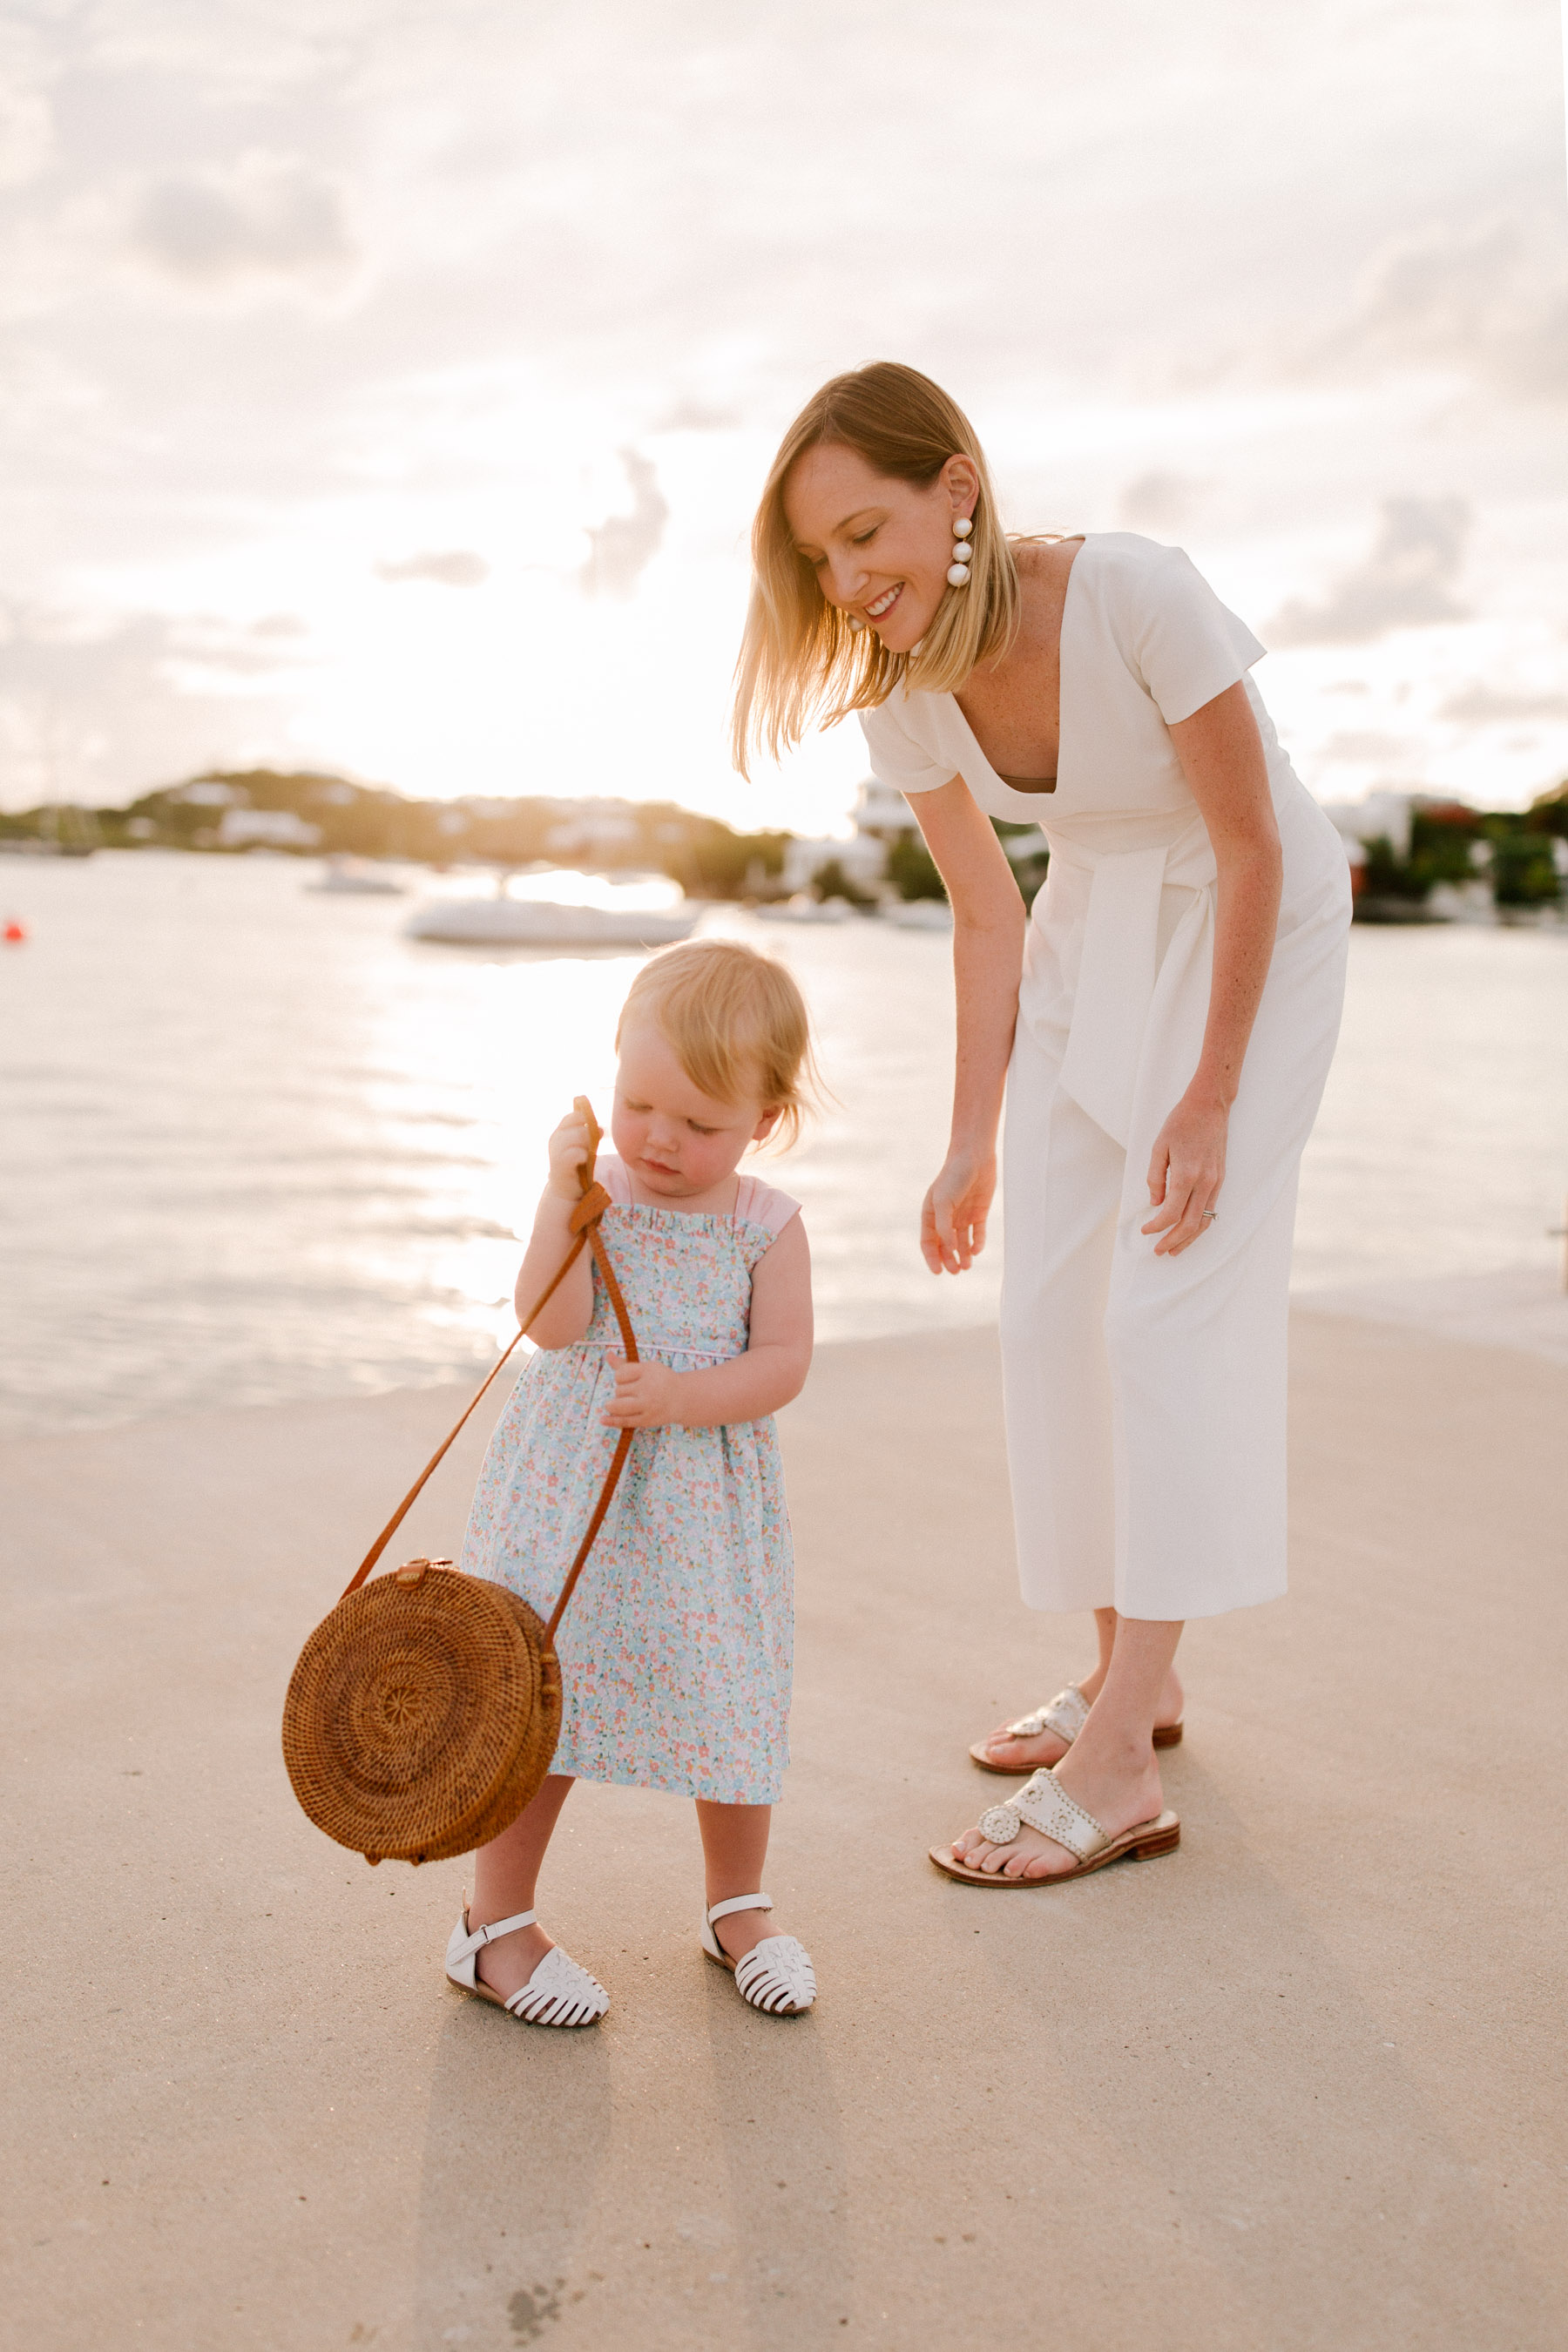 Club Monaco Jumpsuit  / Poppy + Sage Bag / Jack Rogers Sandals / Moon and Lola Earrings / Emma's Smocked Auctions Dress c/o and Sandals / - Kelly in the City